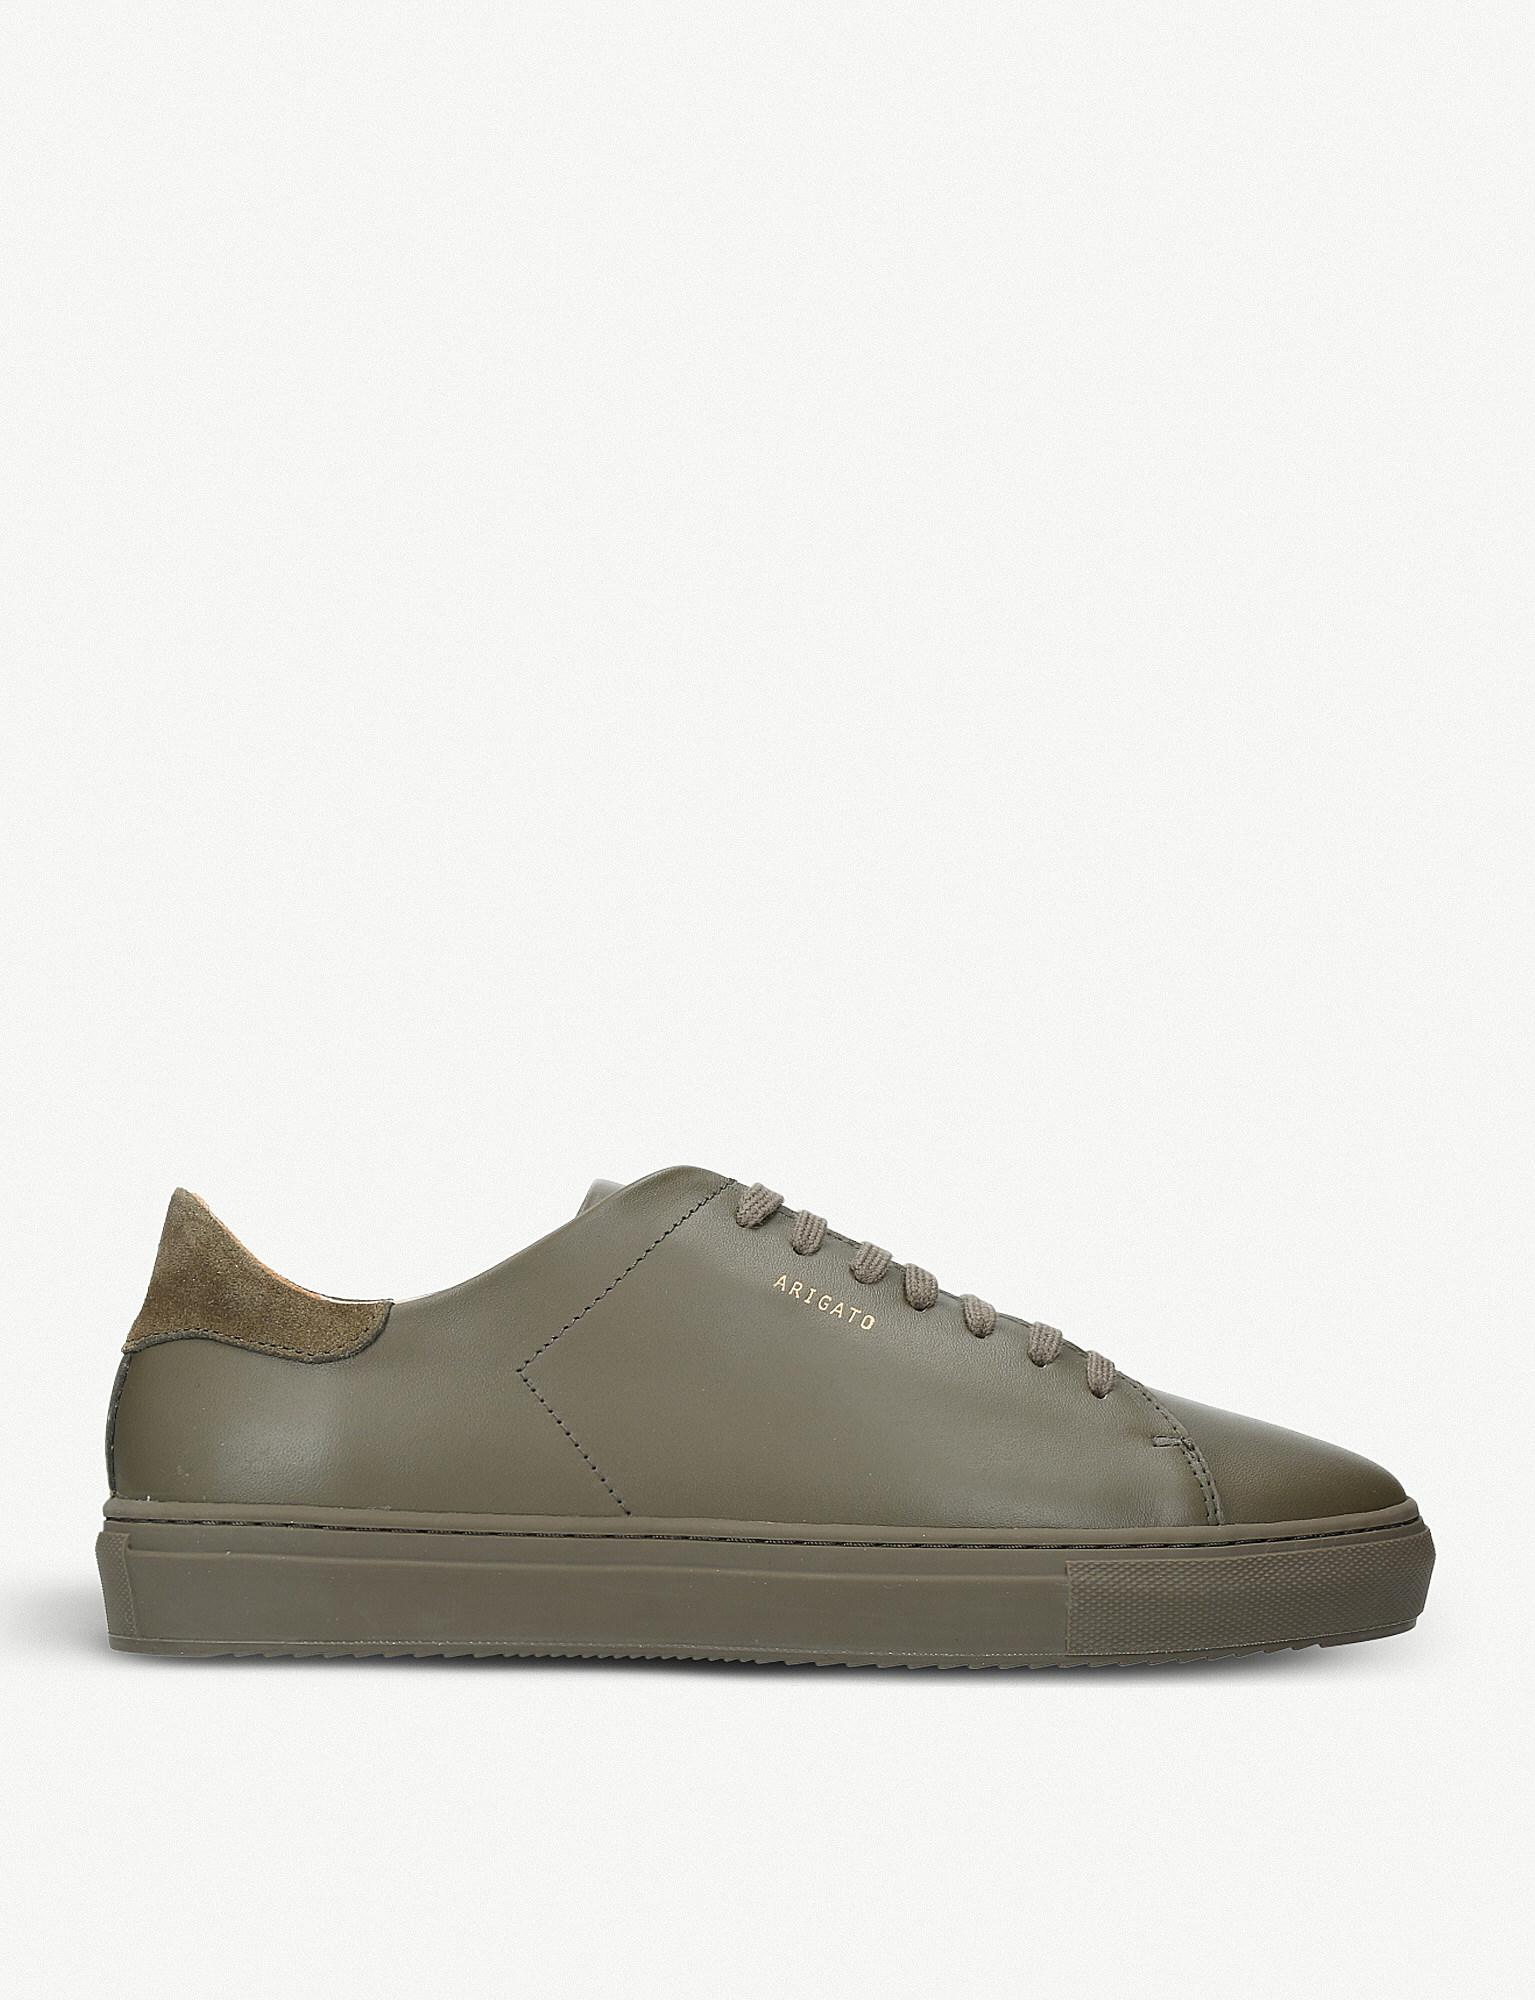 Axel Arigato CLEAN 90 BRUSHED LEATHER SNEAKERS WVMeR